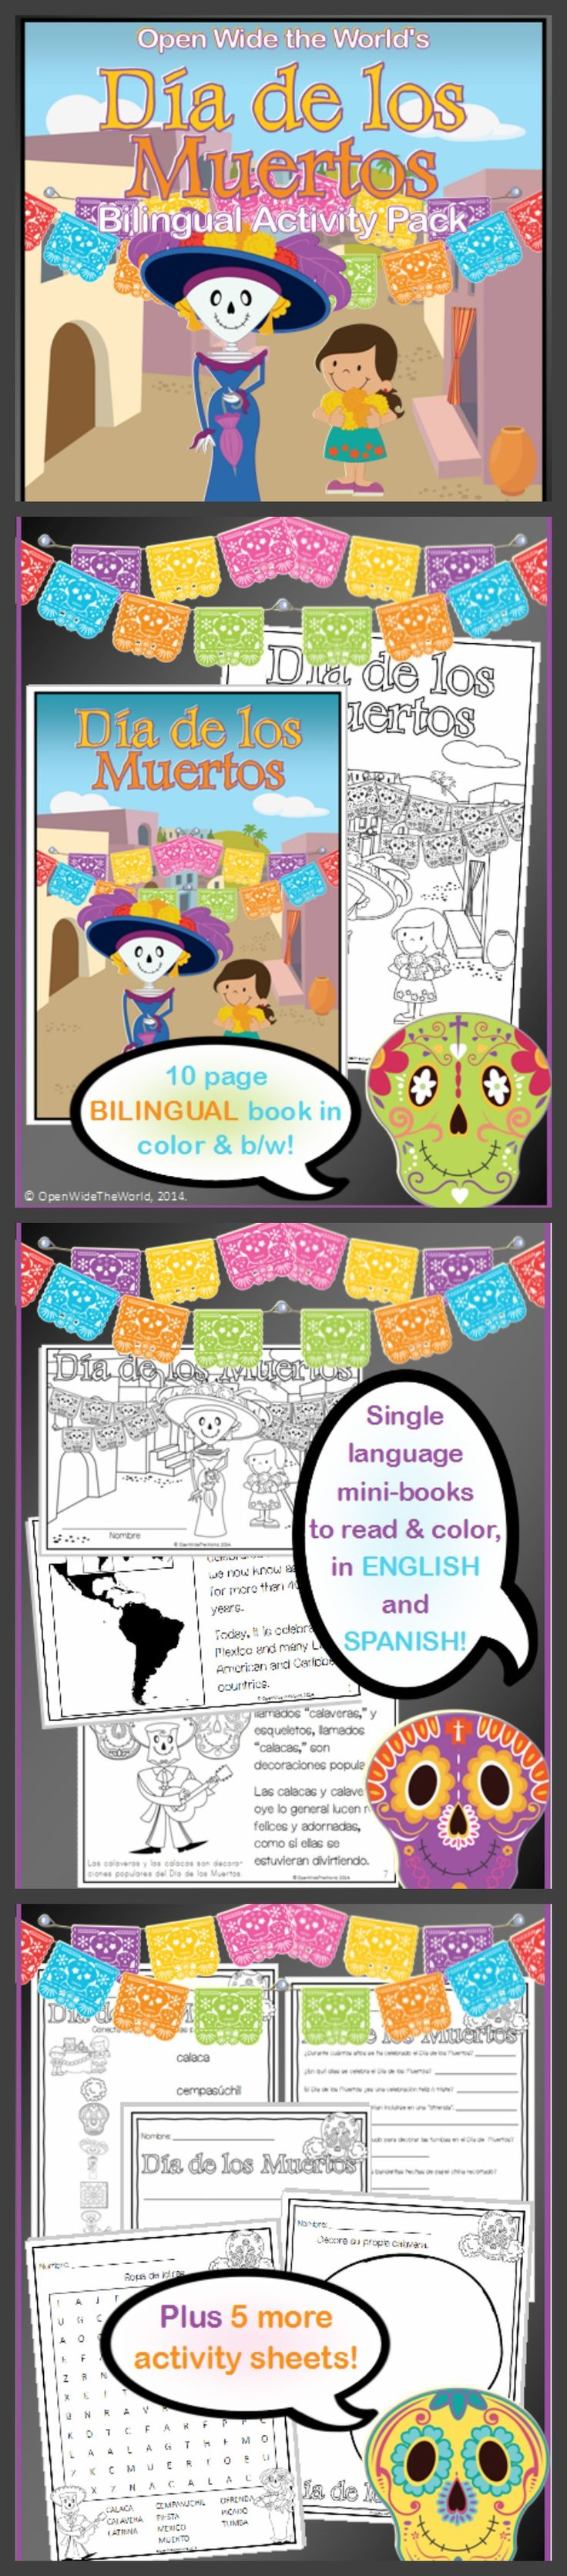 Día de los Muertos, a BILINGUAL basic introductory pack to this fun holiday. In ENGLISH and SPANISH. Book, mini-book, and activity sheets! ($)